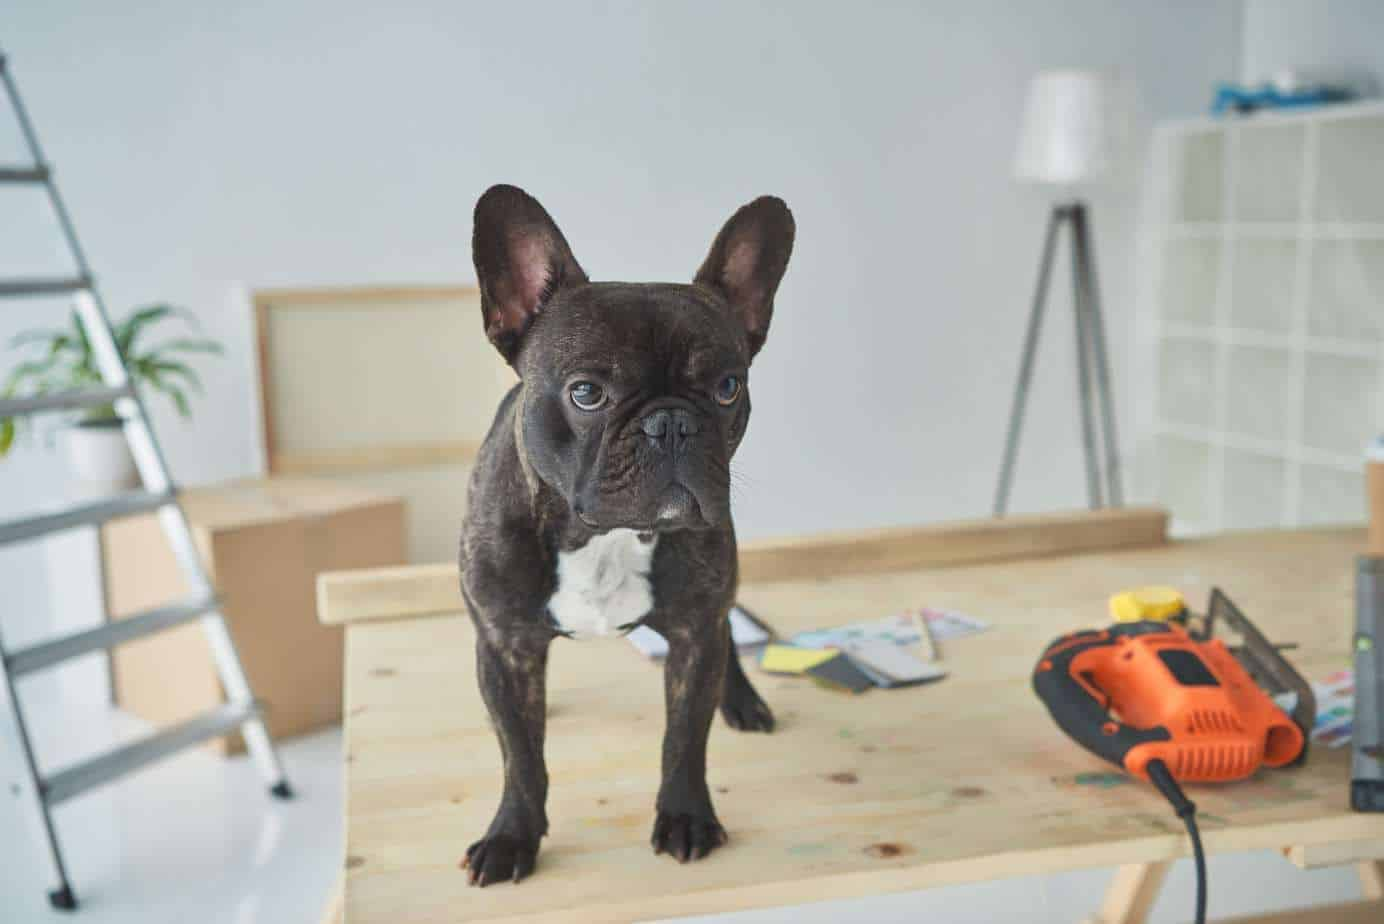 French Bulldog stands on table with power tools during dog-friendly renovations.